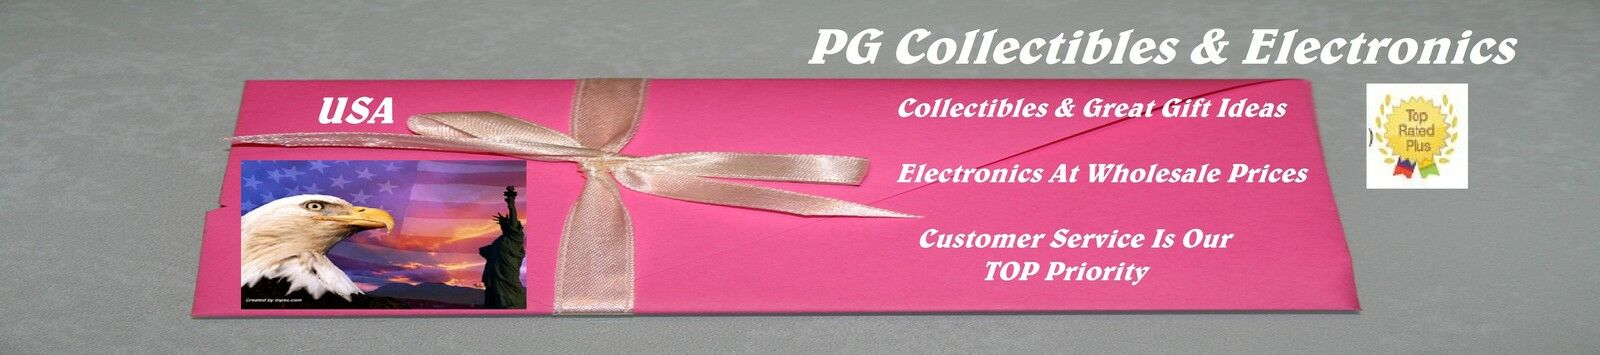 PG Collectibles & Electronics